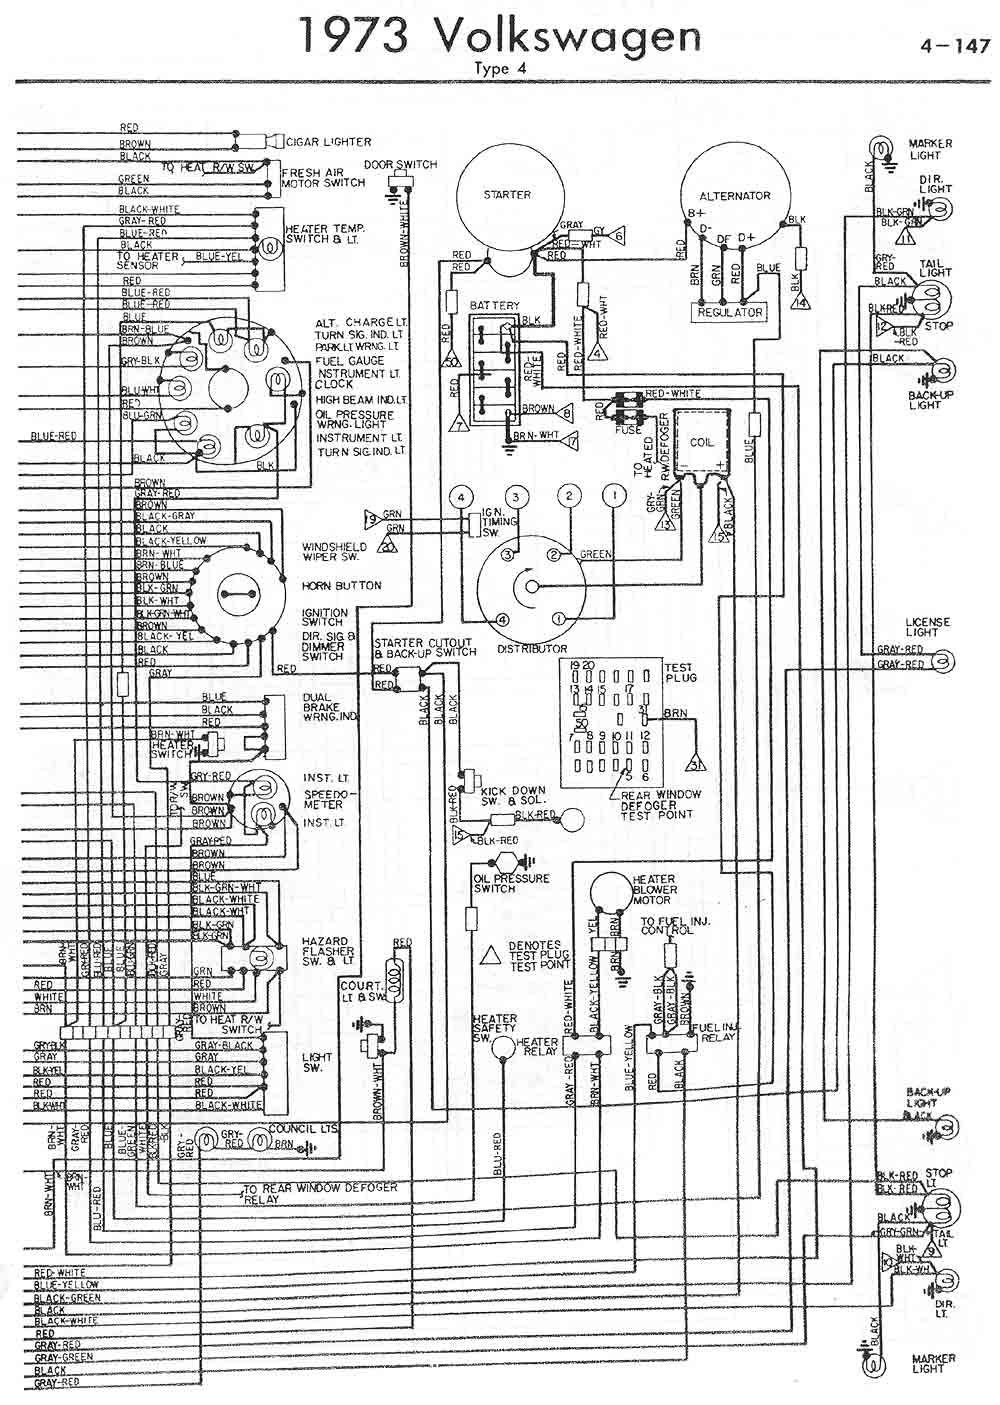 2 Wire Switch Diagram - Wiring Diagrams  Way Intermediate Switch Wiring Diagram on 3 way switch installation, gfci wiring diagram, 3 way switch with dimmer, three switches one light diagram, two way switch diagram, 3 way light switch, 3 way switch lighting, 3 way switch getting hot, 3 way switch schematic, 3 way switch electrical, volume control wiring diagram, 3 way switch troubleshooting, four way switch diagram, easy 3 way switch diagram, 3 way switch cover, 3 wire switch diagram, 3 way switch help, 3 way switch wire, circuit breaker wiring diagram,